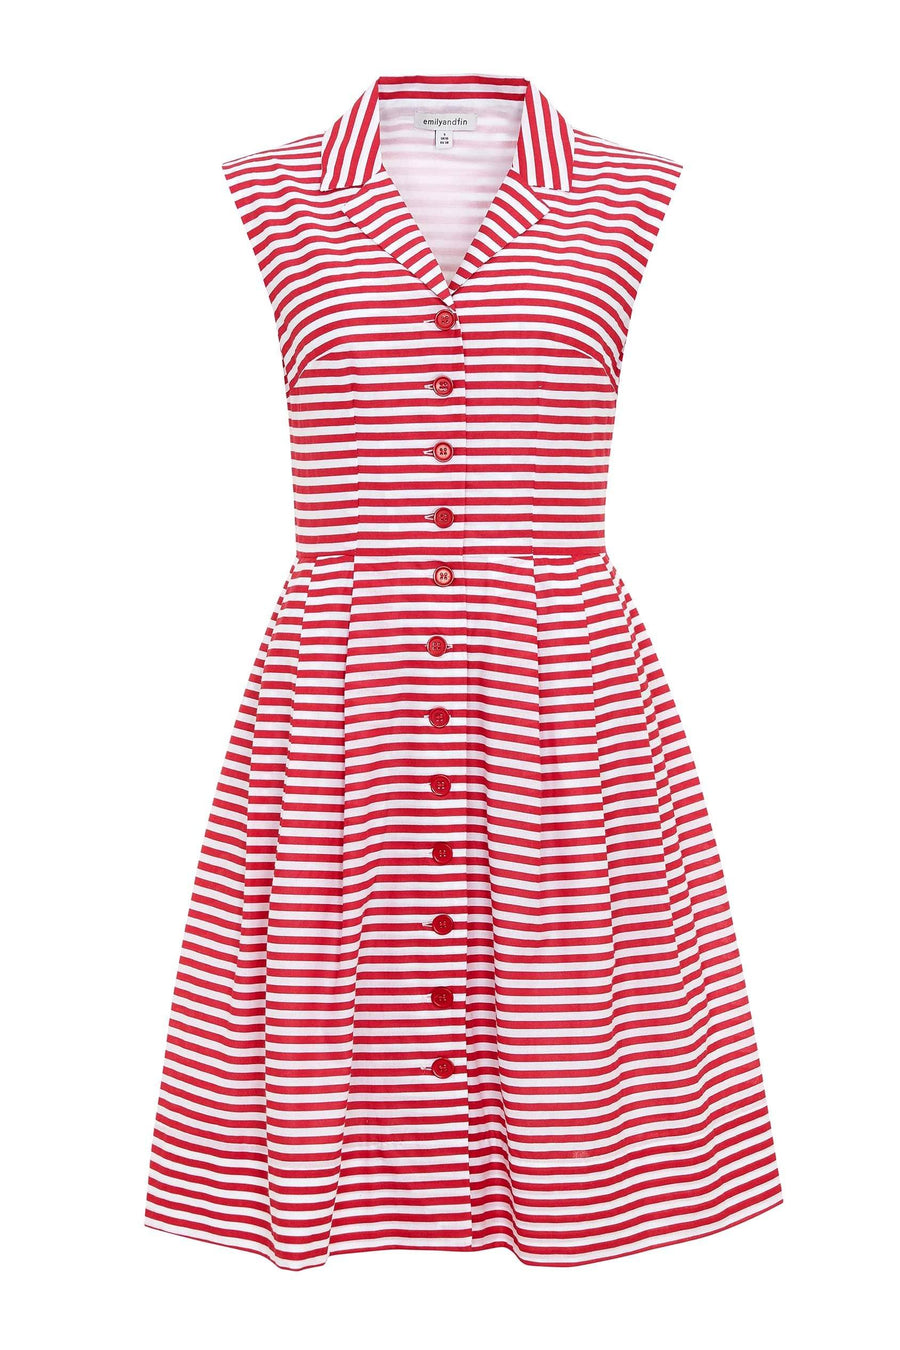 Frankie Dress in Red and White Stripe